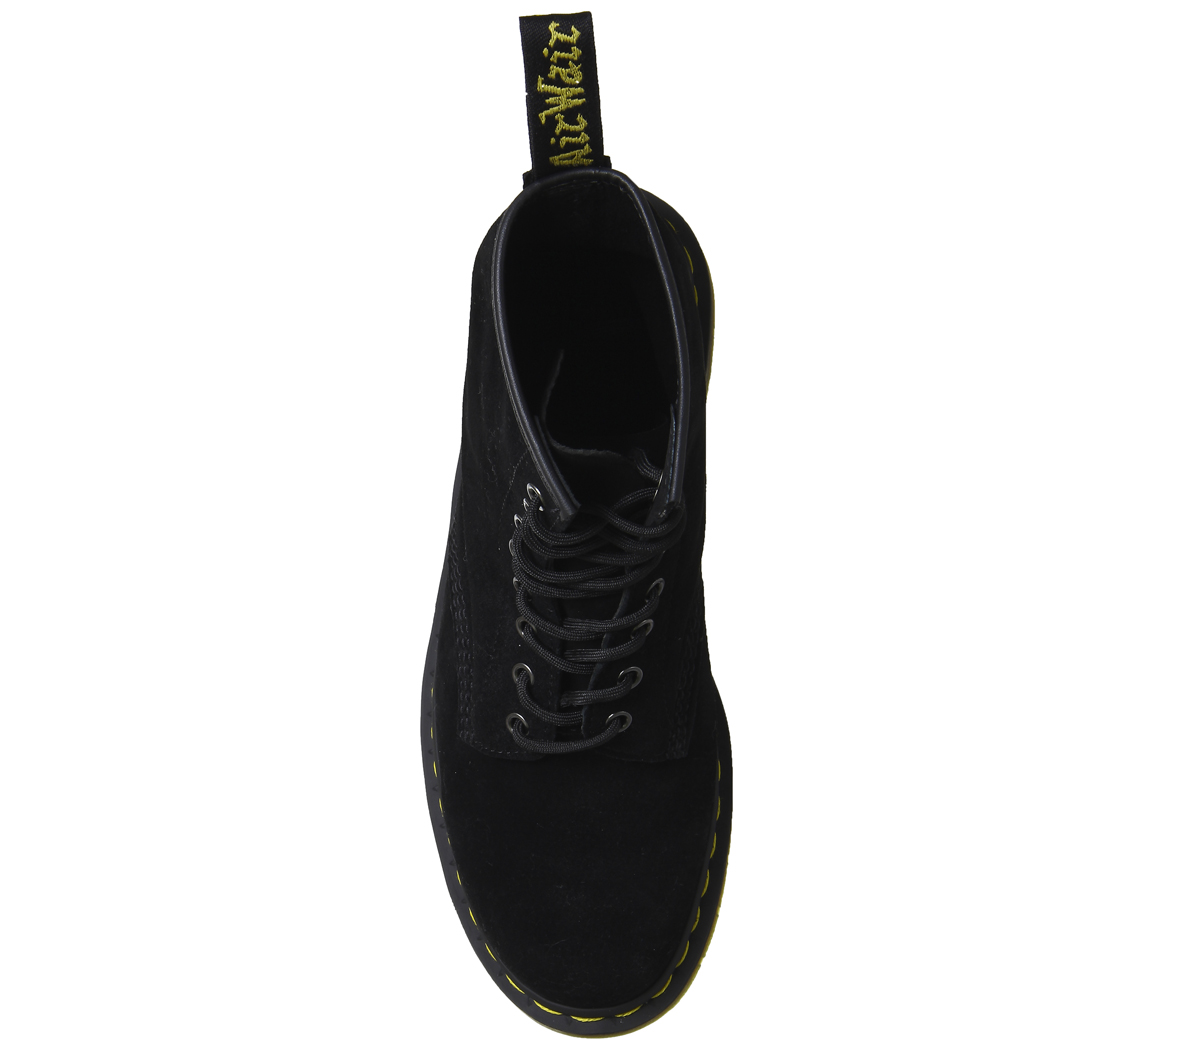 b7408087eb4 Mens Dr. Martens Dm 8 Eye Lace Boots Black Soft Buck Boots